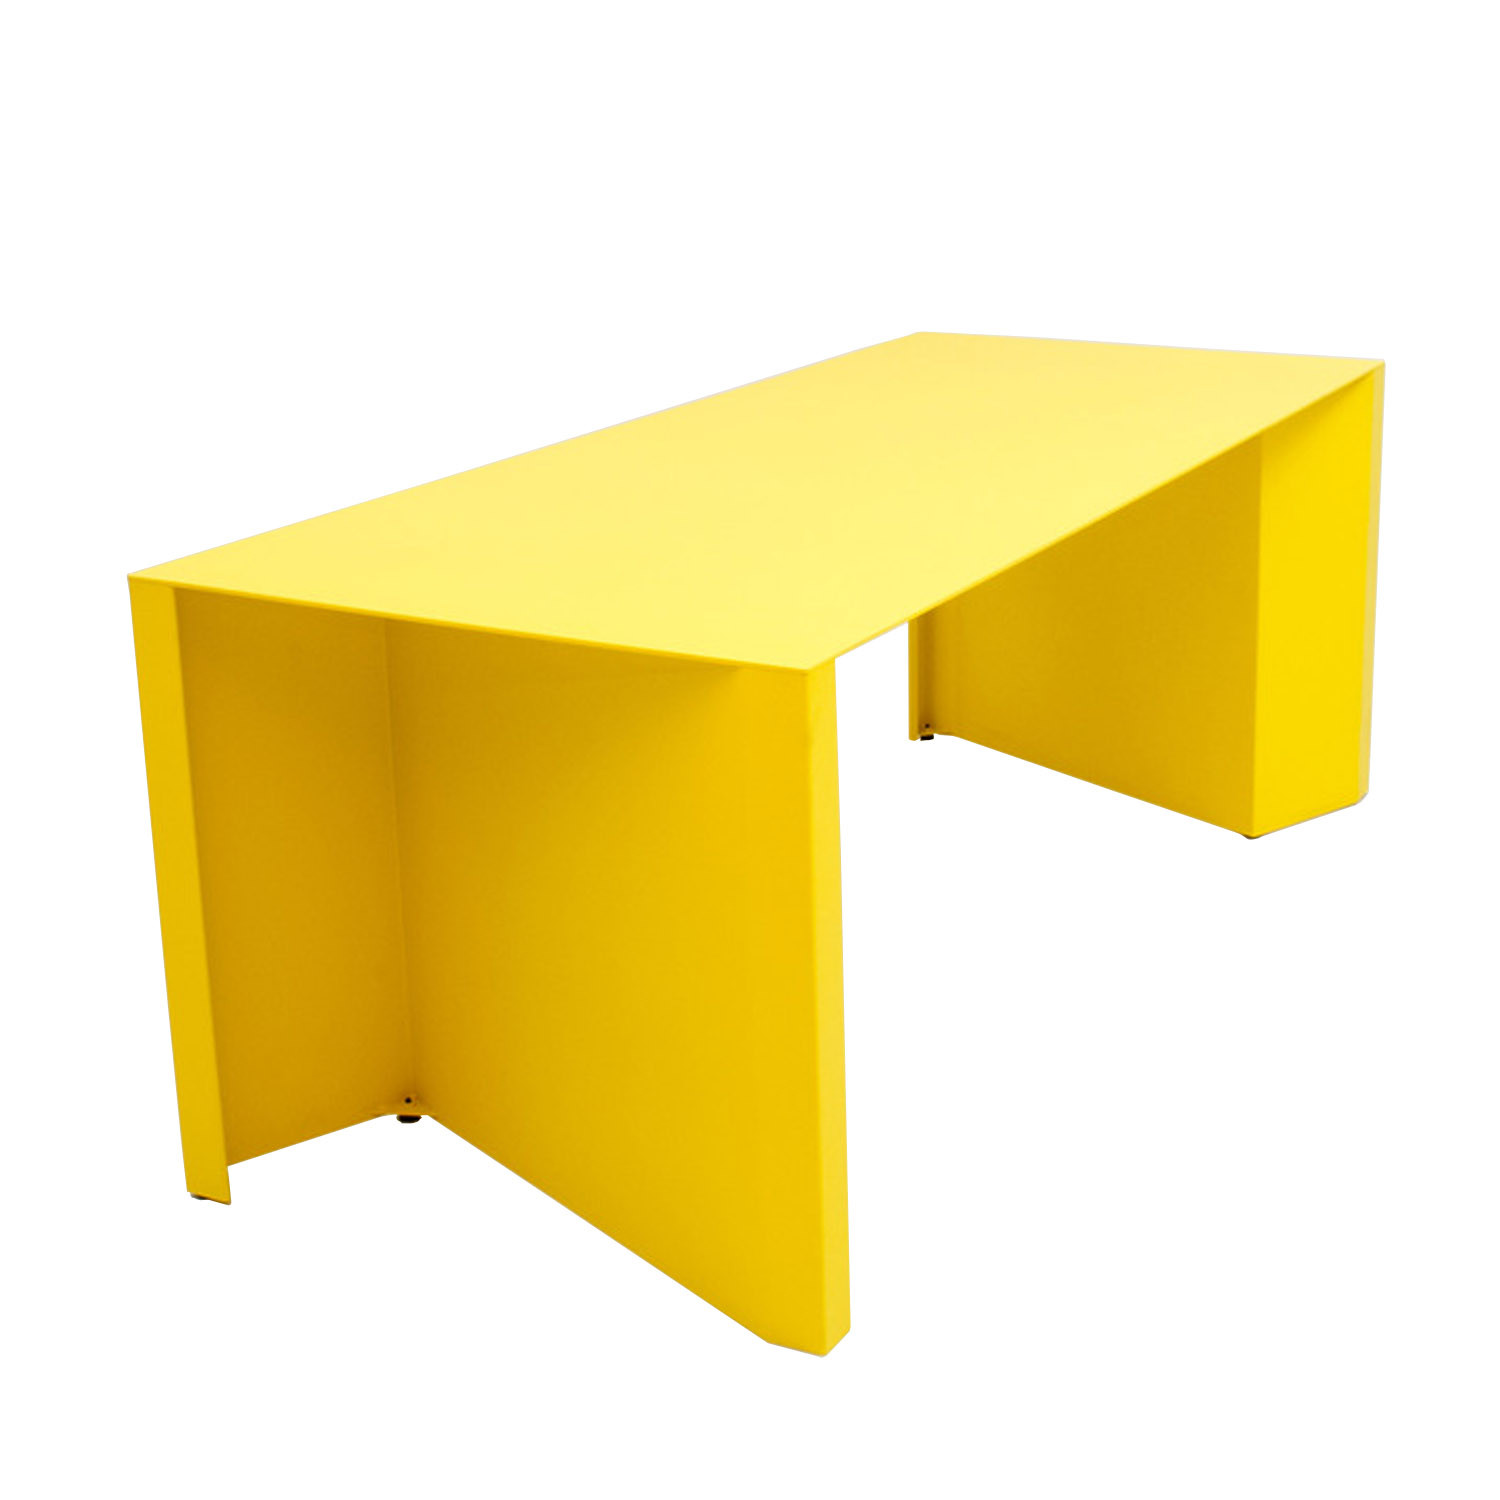 Z-Table from Bataille ibens